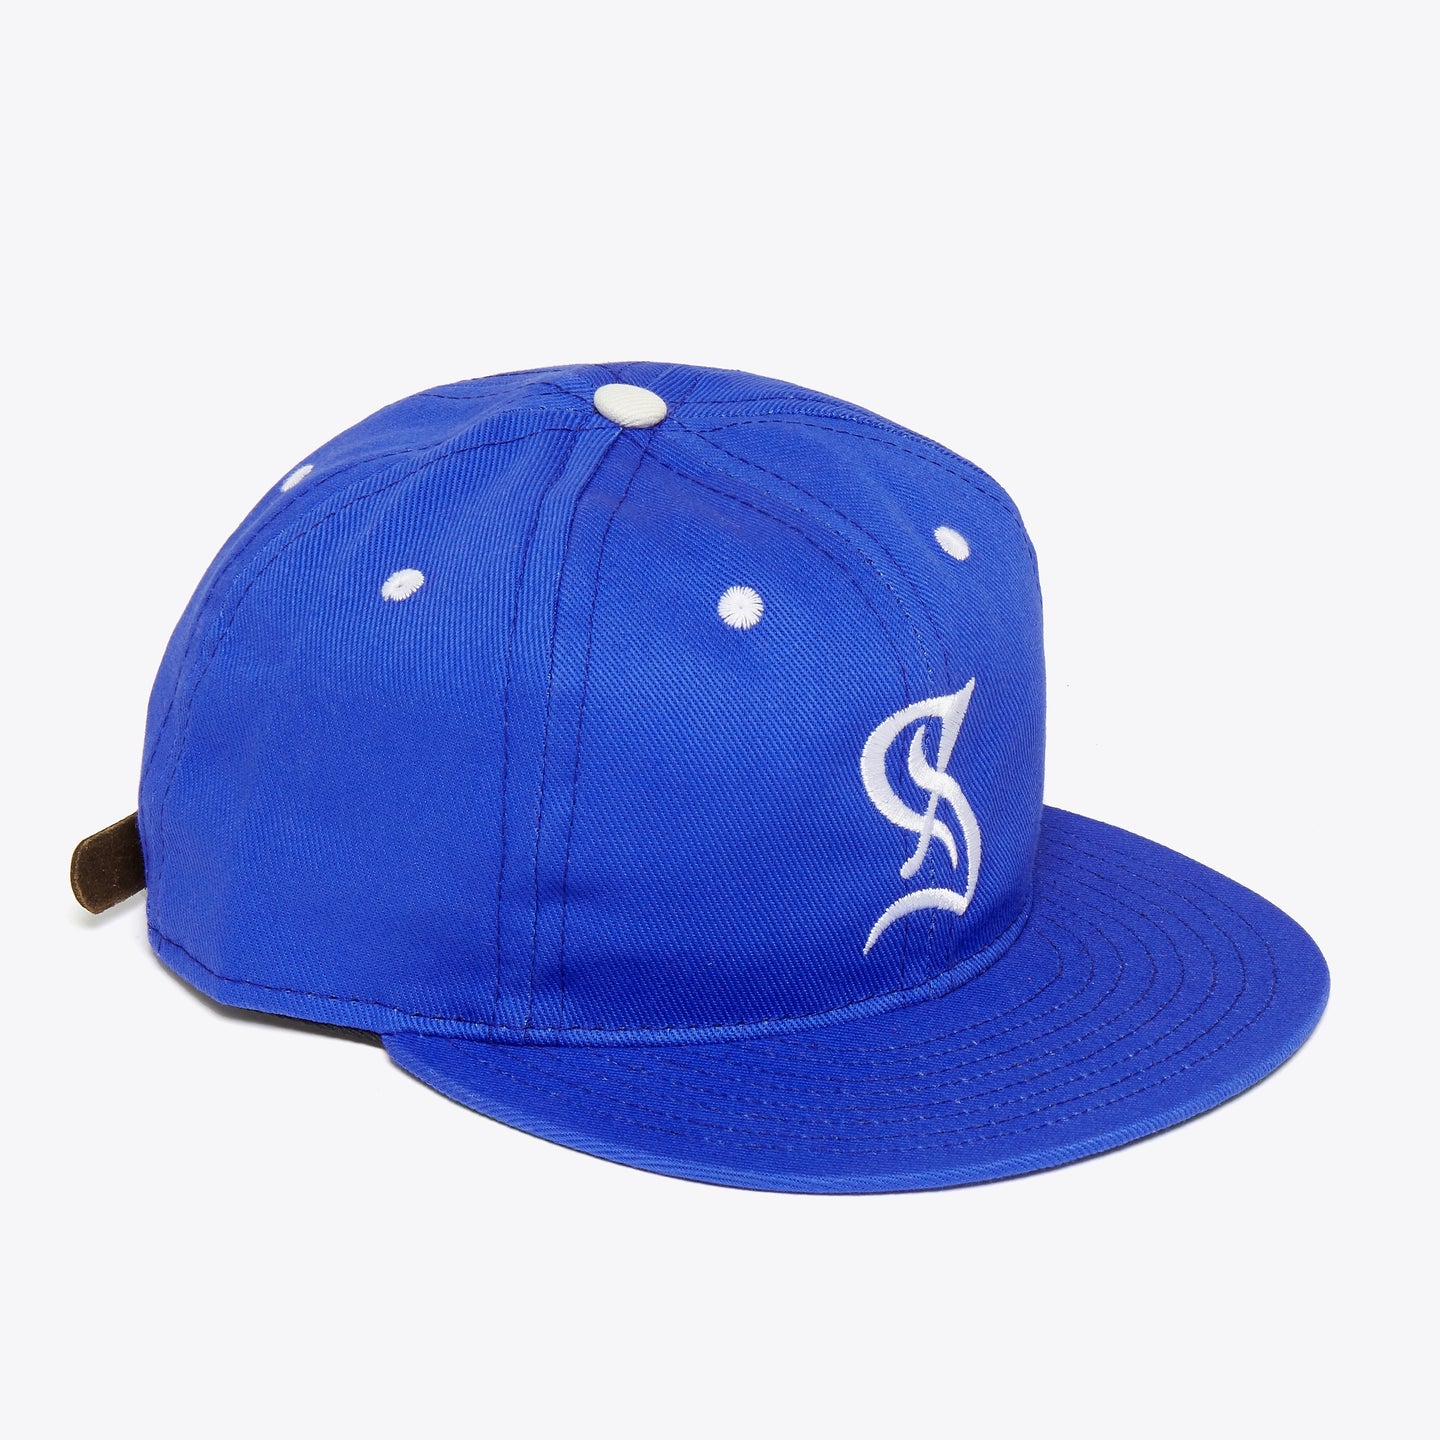 Santurce Cangrejeros 1954 Cotton Ballcap